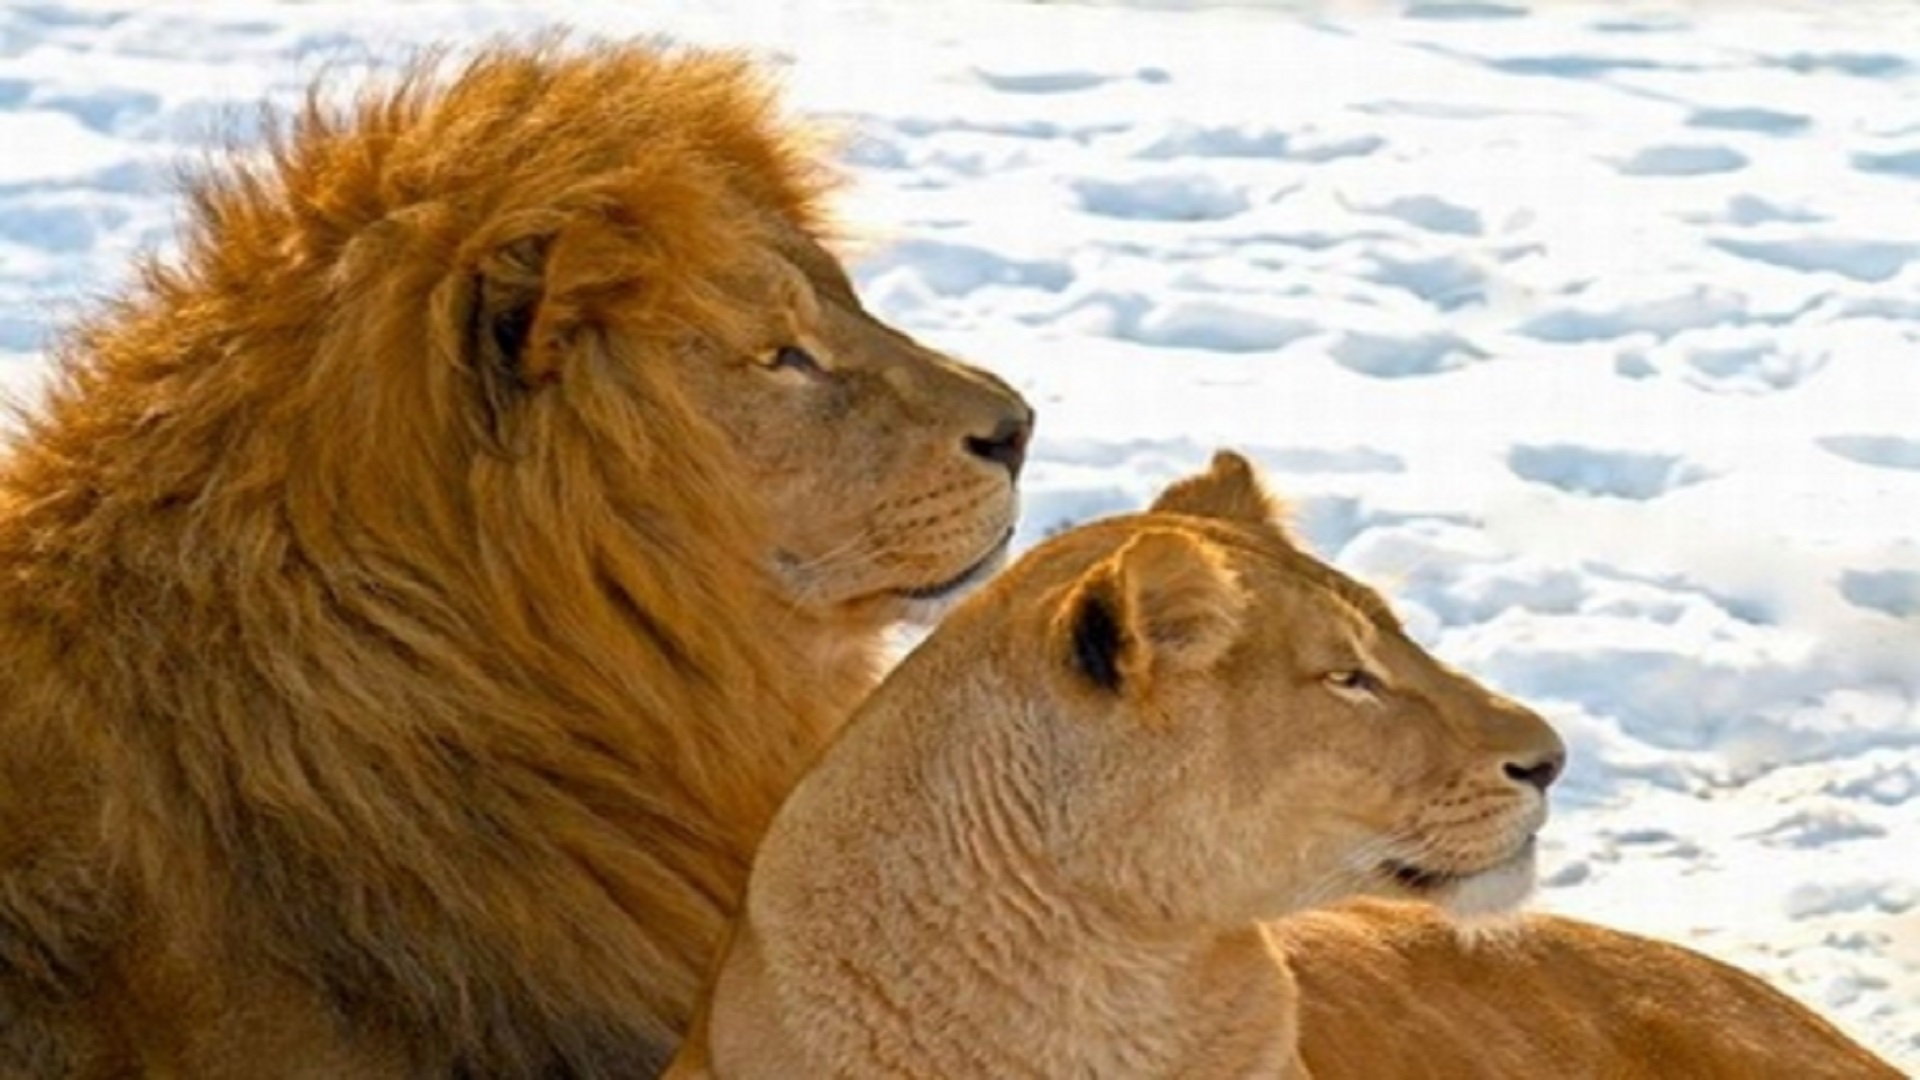 Hd Quote Wallpapers For Laptop Lion Couples In Africa Hd Free Wallpapers Hd Wallpaper